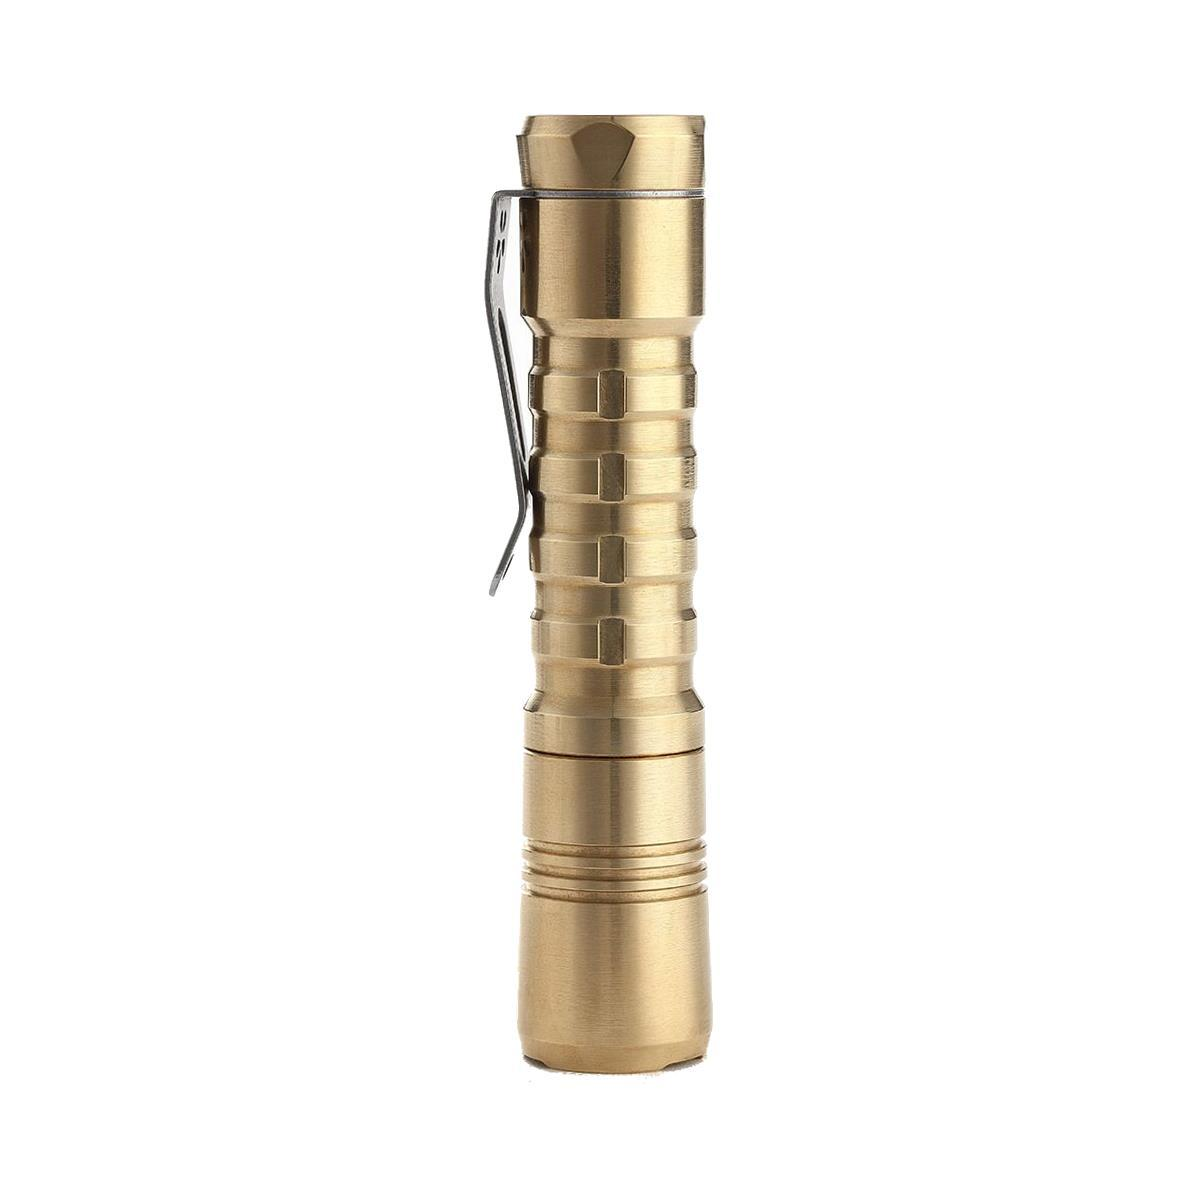 Upgraded ReyLight New Pineapple Nichia 219C 470LM 4Modes Memory Function EDC Tac